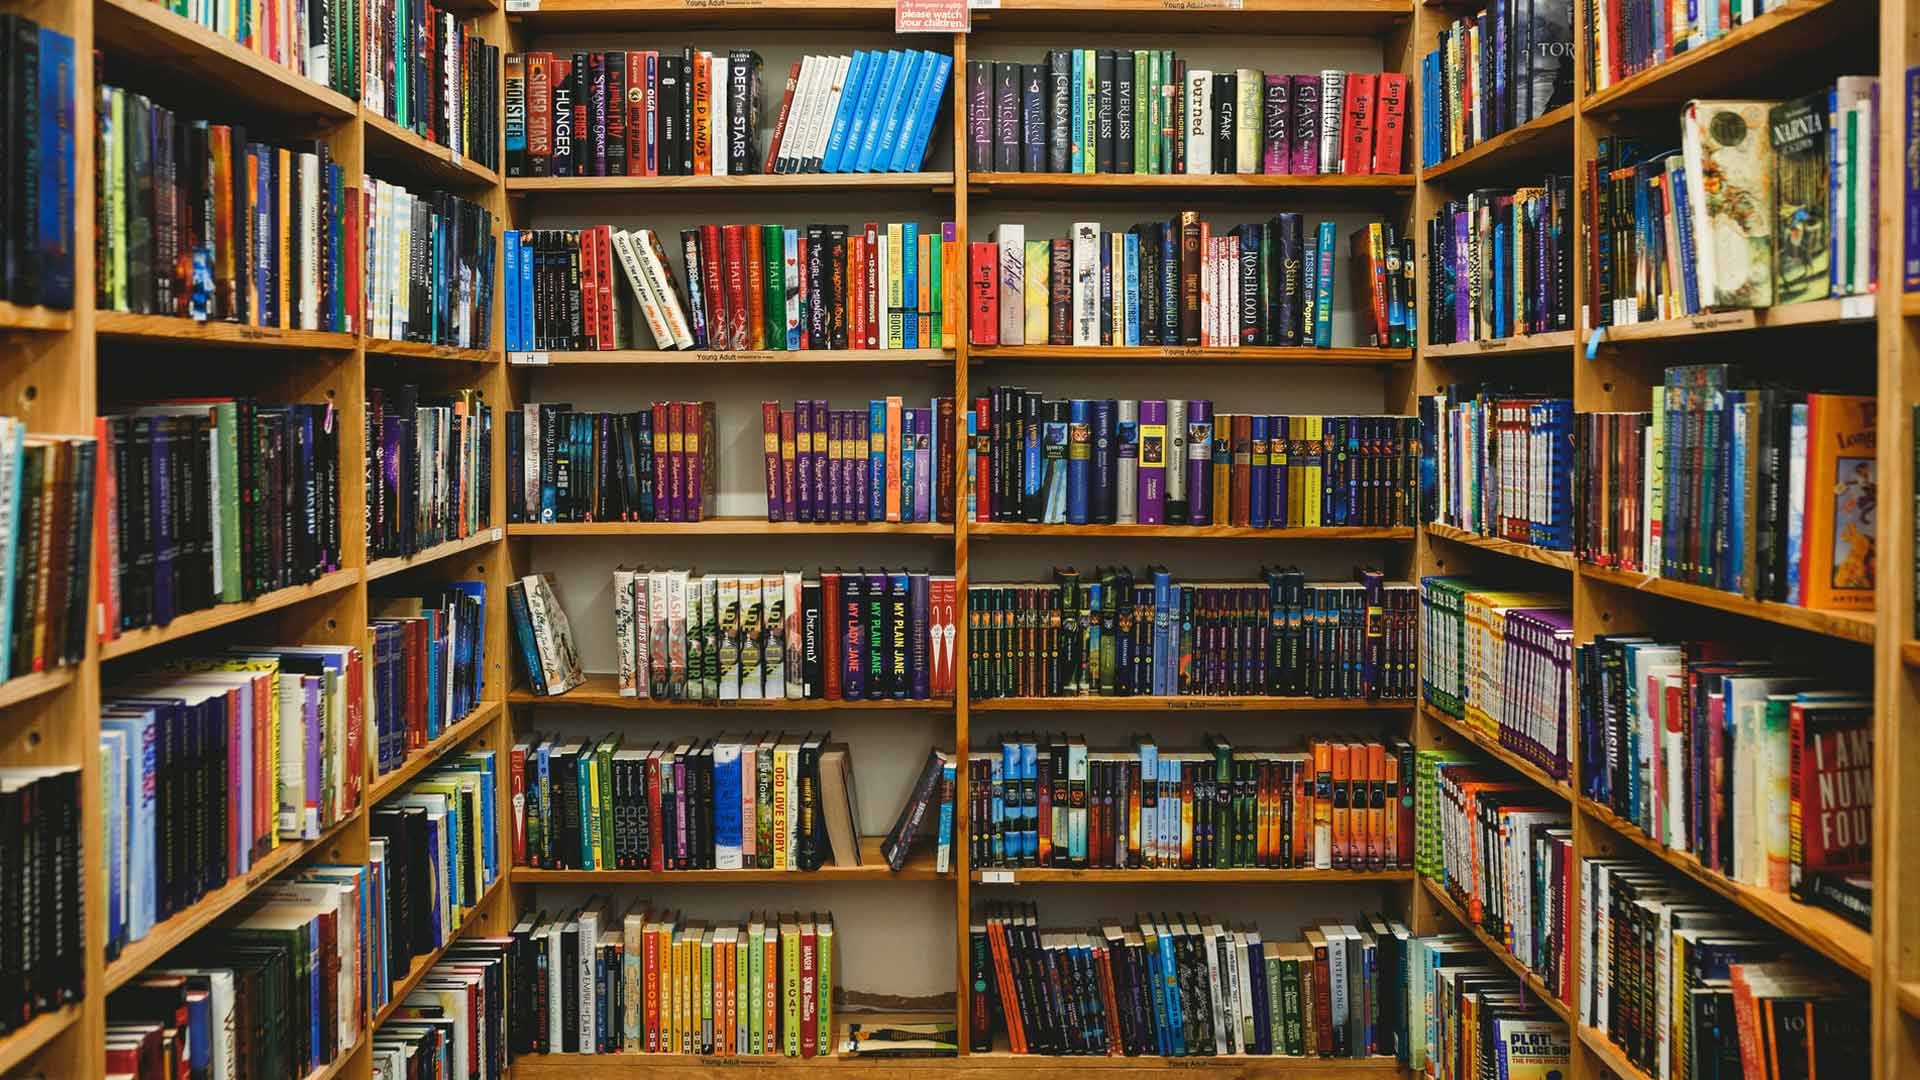 Home library Zoom background images books virtual meeting backgrounds 1920x1080